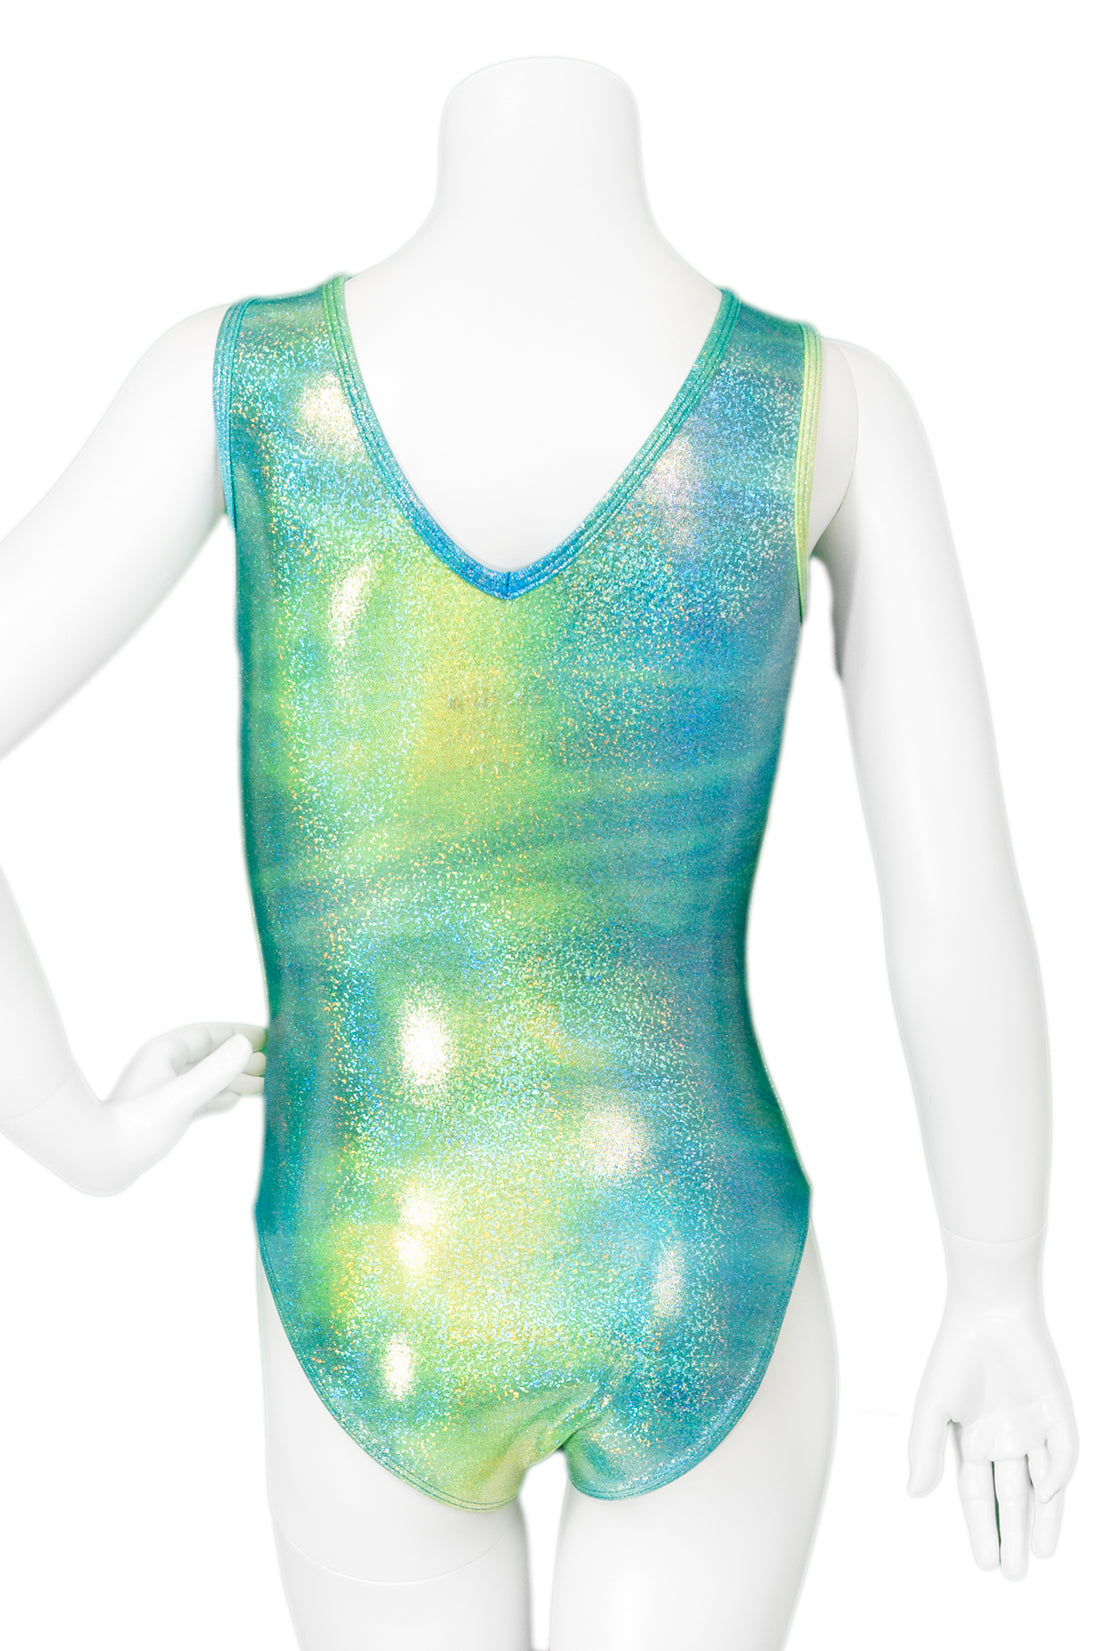 Turquoise and Lime Twinkle Leotard